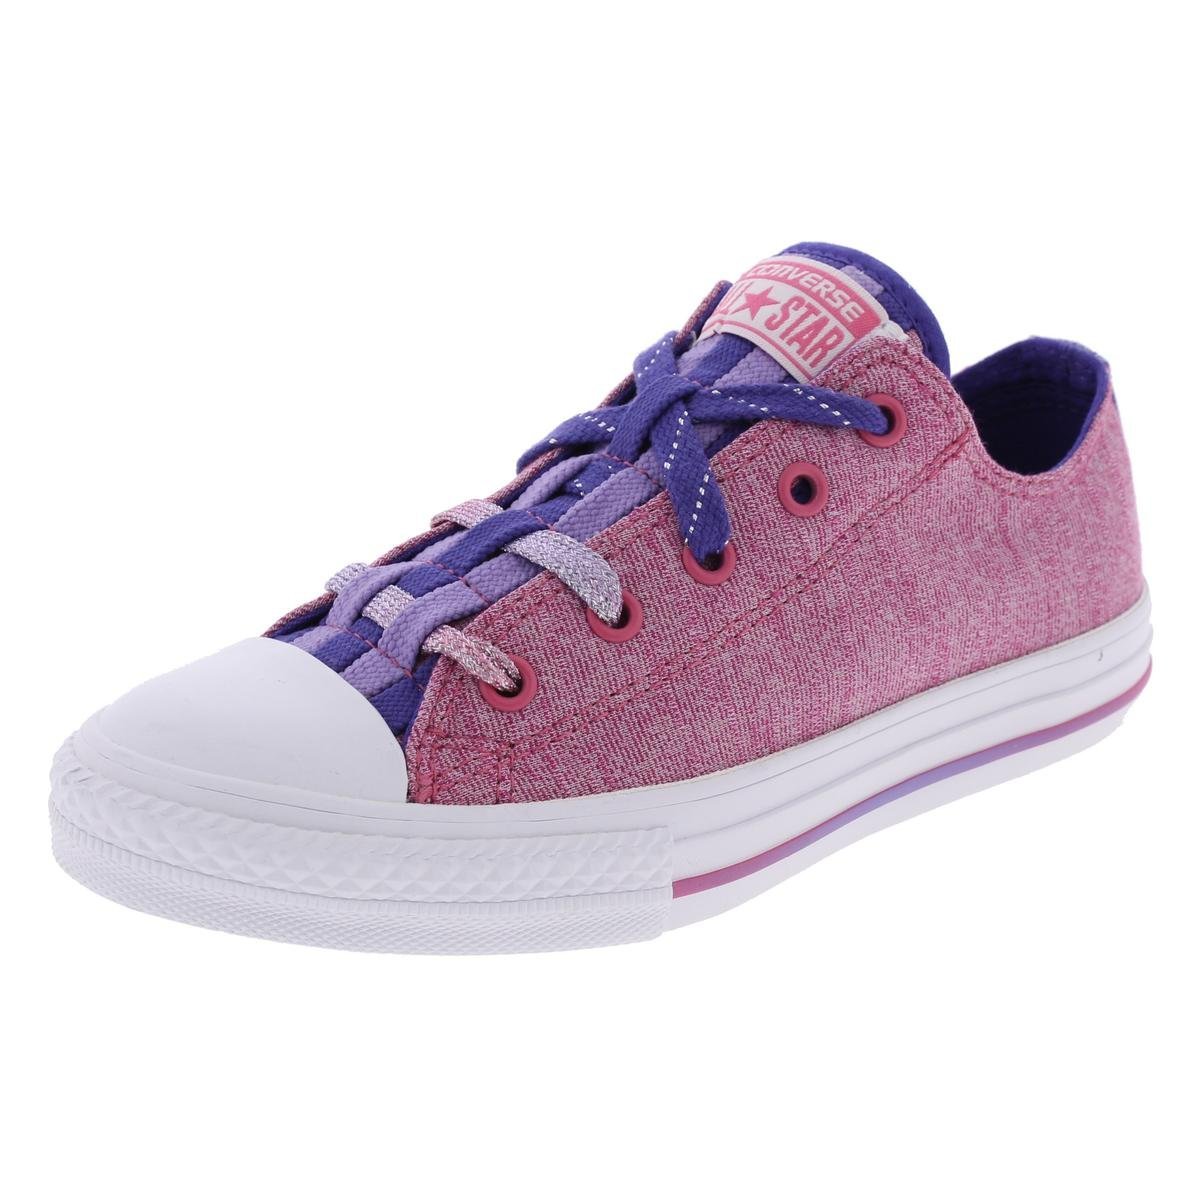 Converse Chuck Taylor All Star Loopholes Girls Sneakers - 654233f